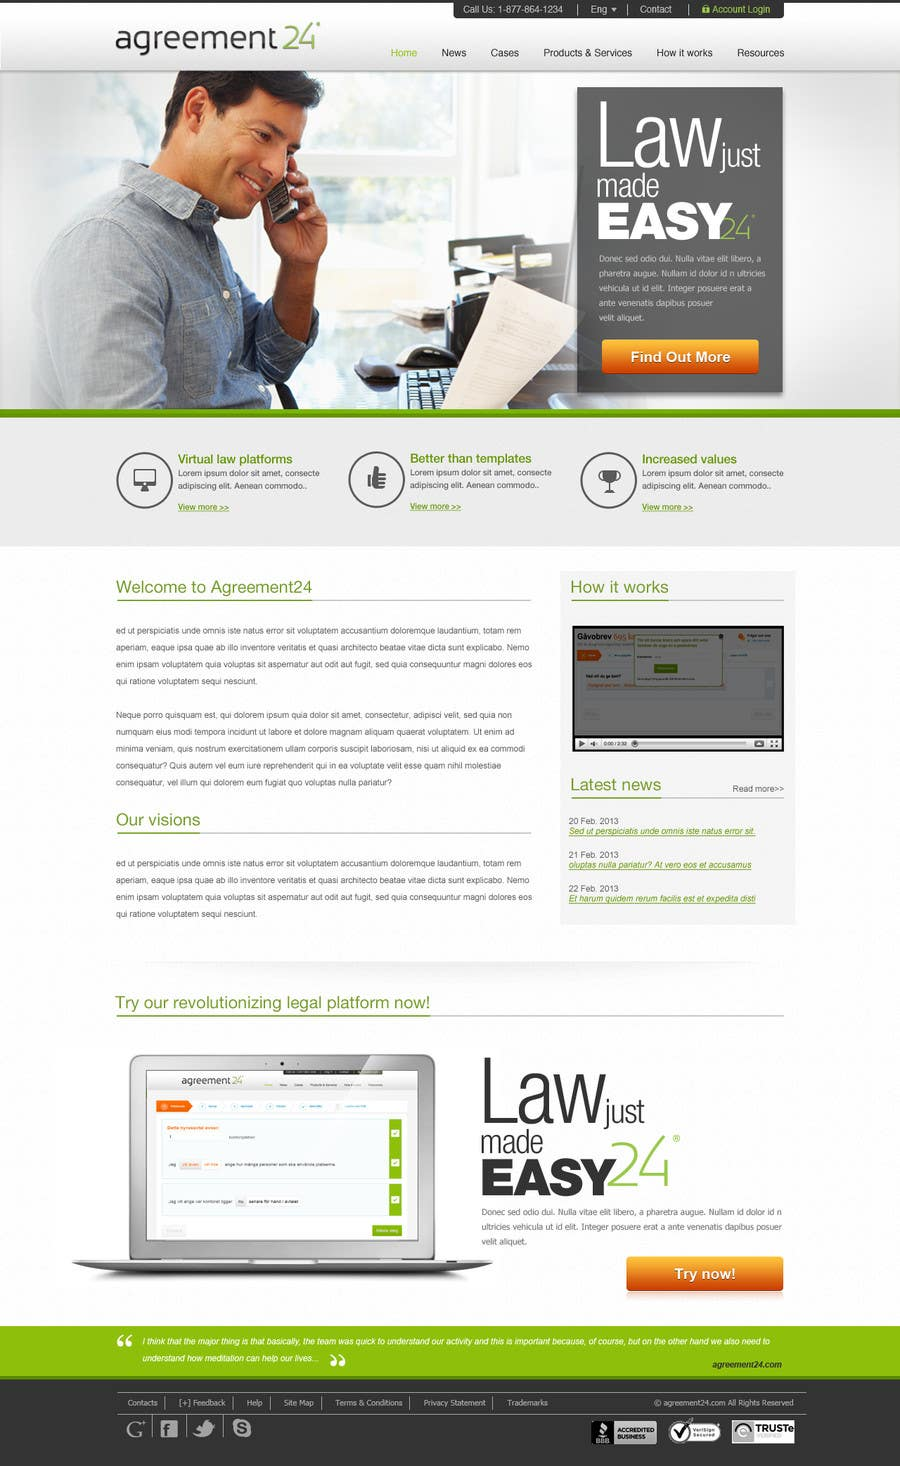 #6 for Graphic redesign - FRONT PAGE and sub template - agreement24.com website by herick05